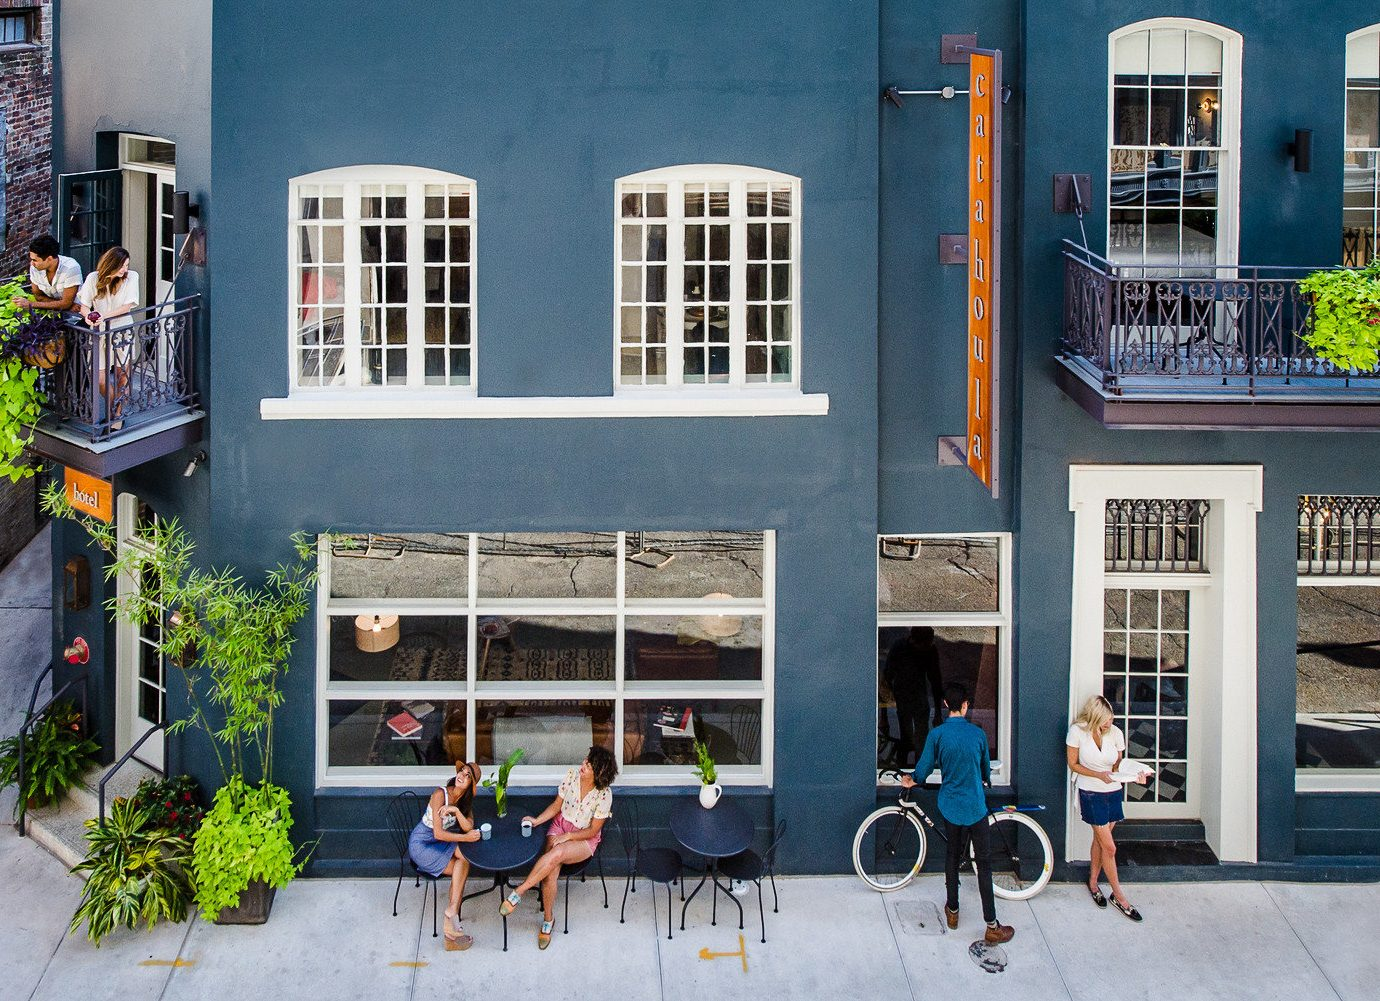 Boutique Hotels Hotels Trip Ideas building outdoor neighbourhood window facade mixed use house real estate City apartment